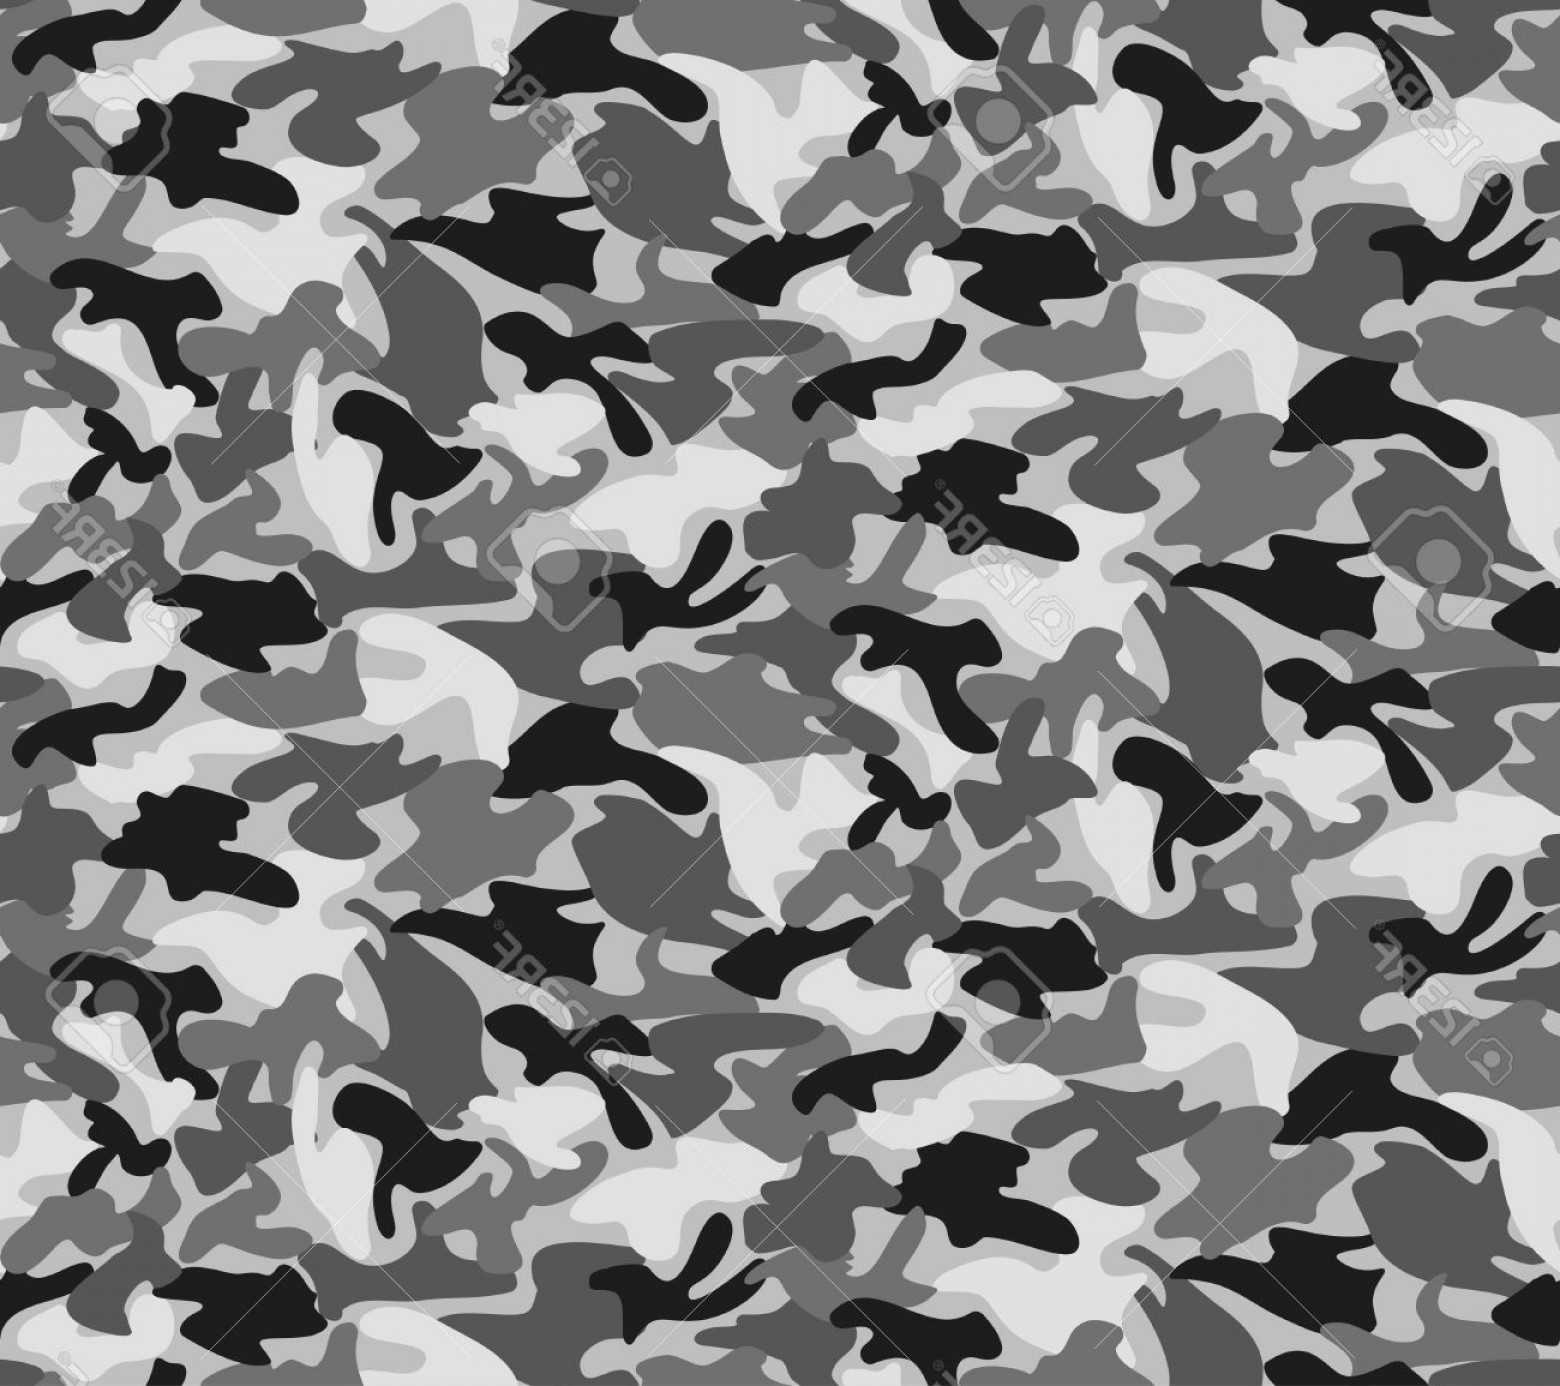 1560x1386 Photostock Vector Abstract Military Gray Camouflage Background